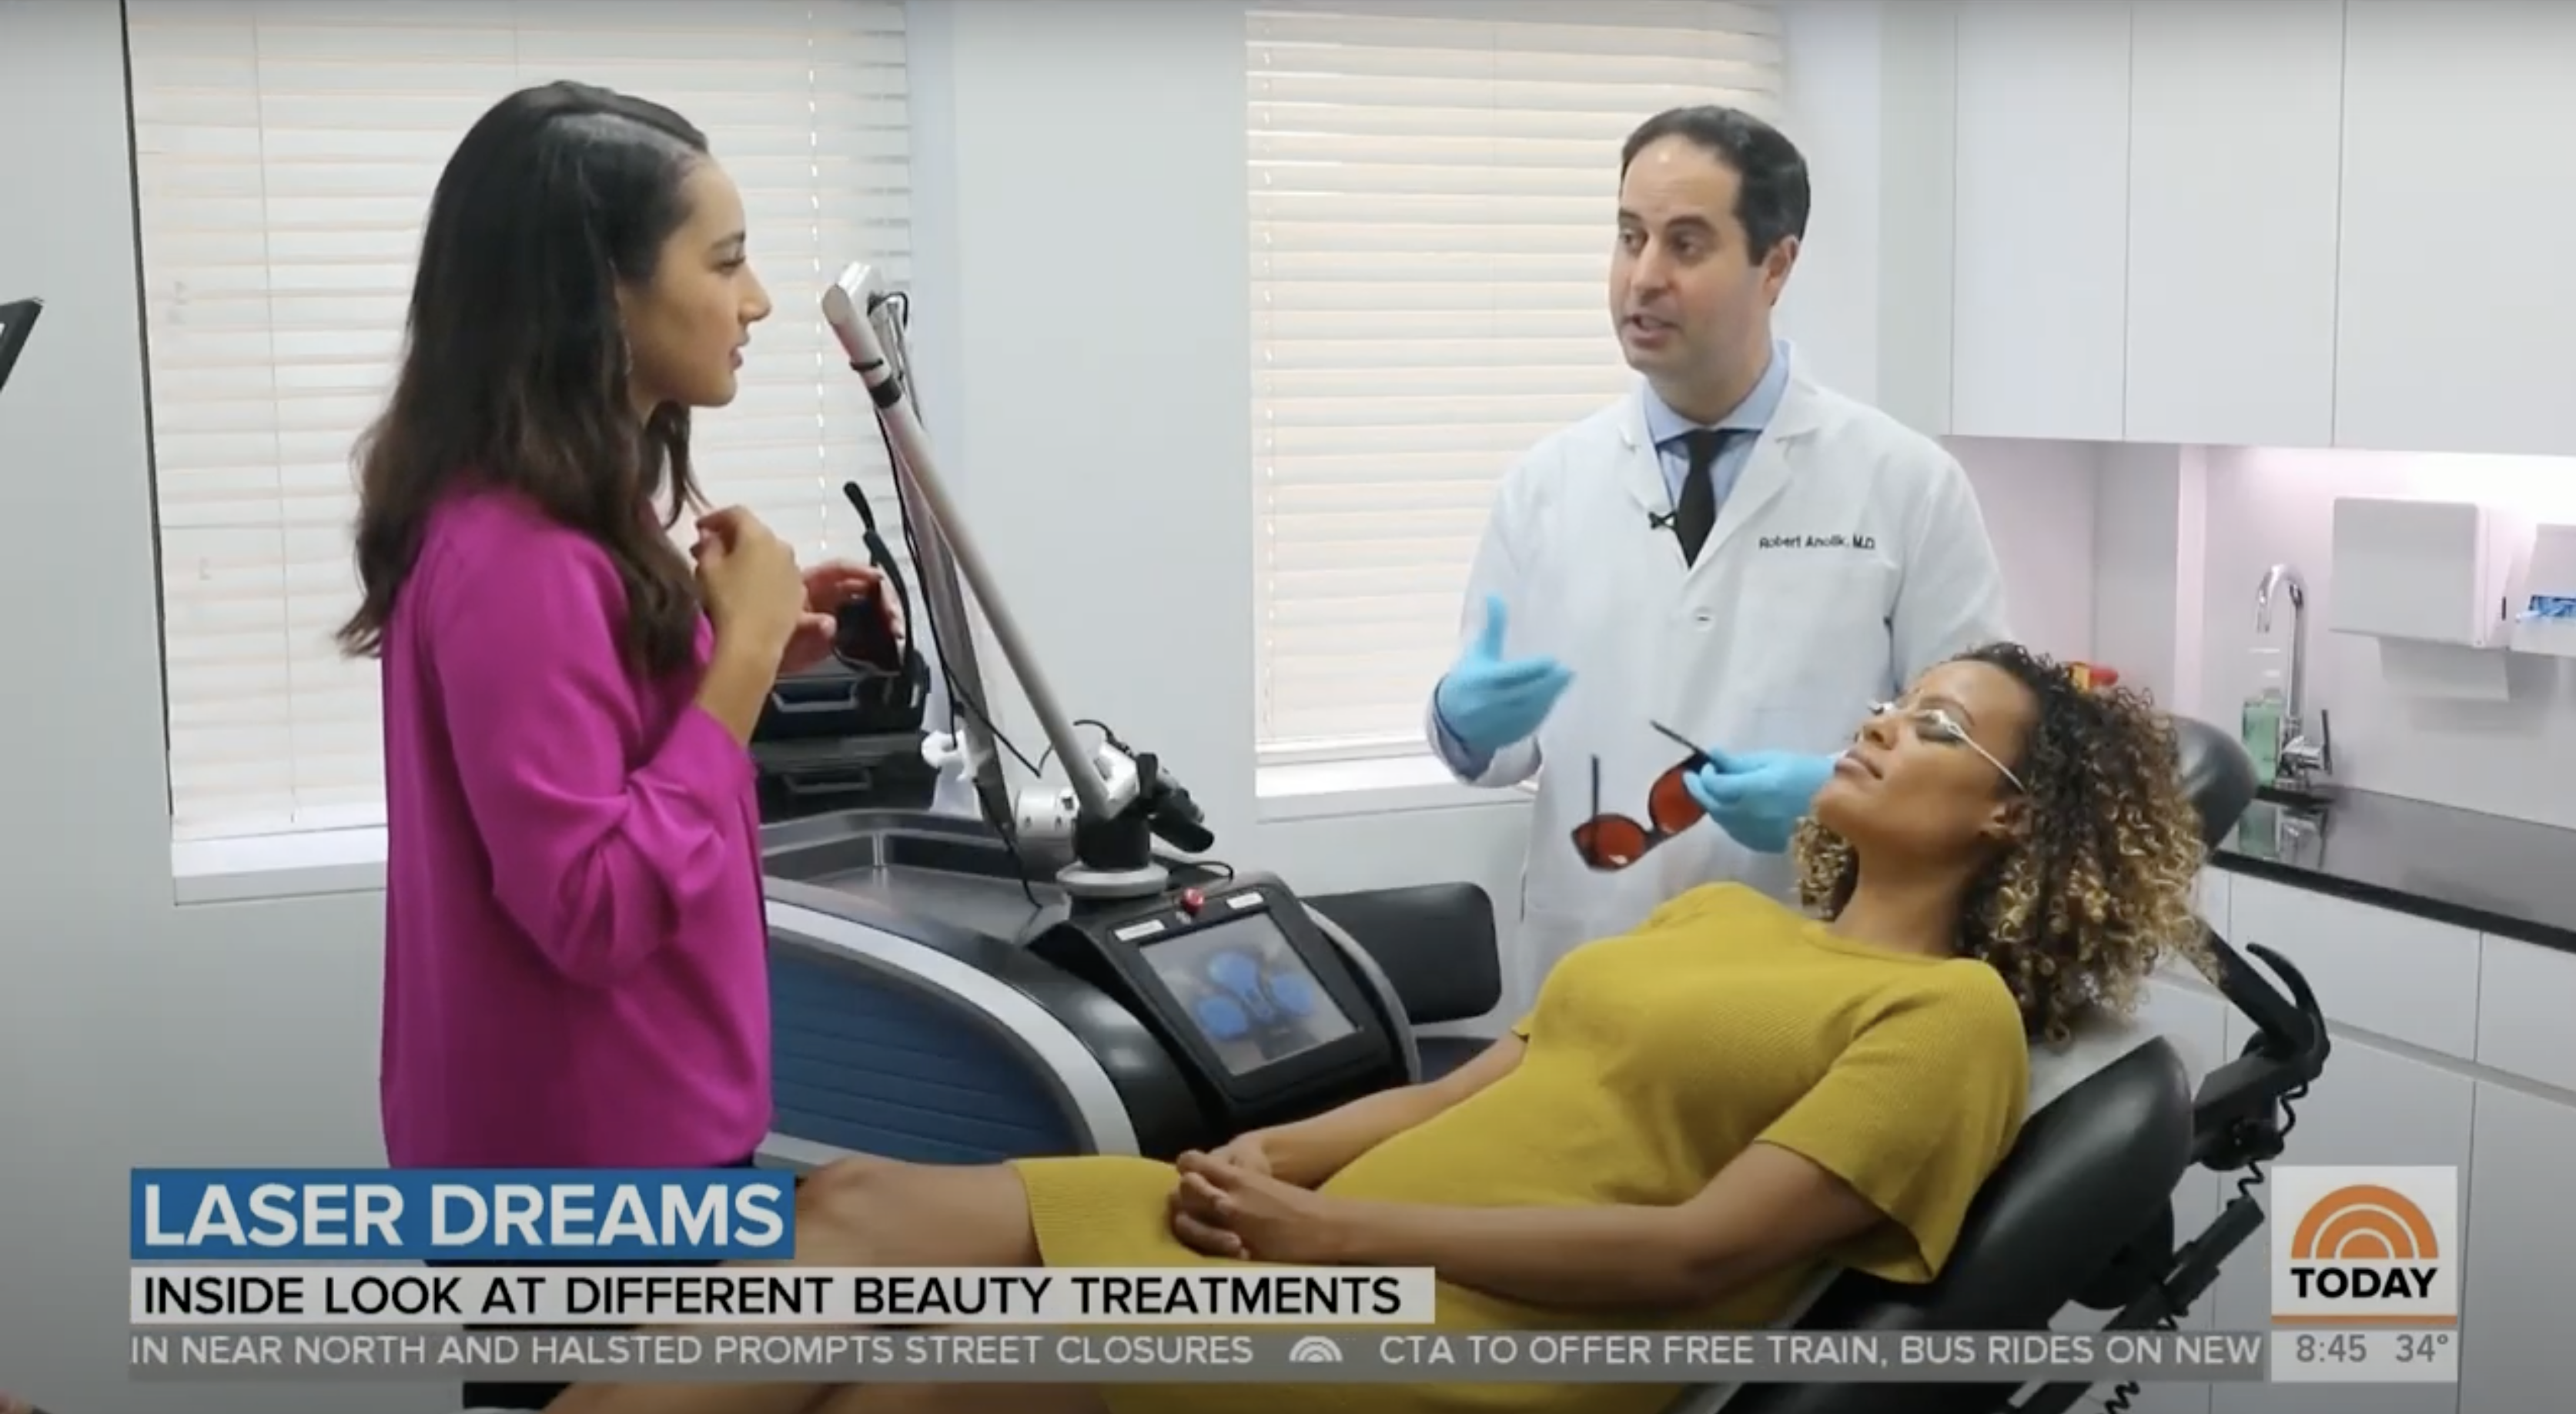 Dr. Robert Anolik is featured on NBC's Today Show to discuss the possibilities of laser skin treatments, NYC, NY.